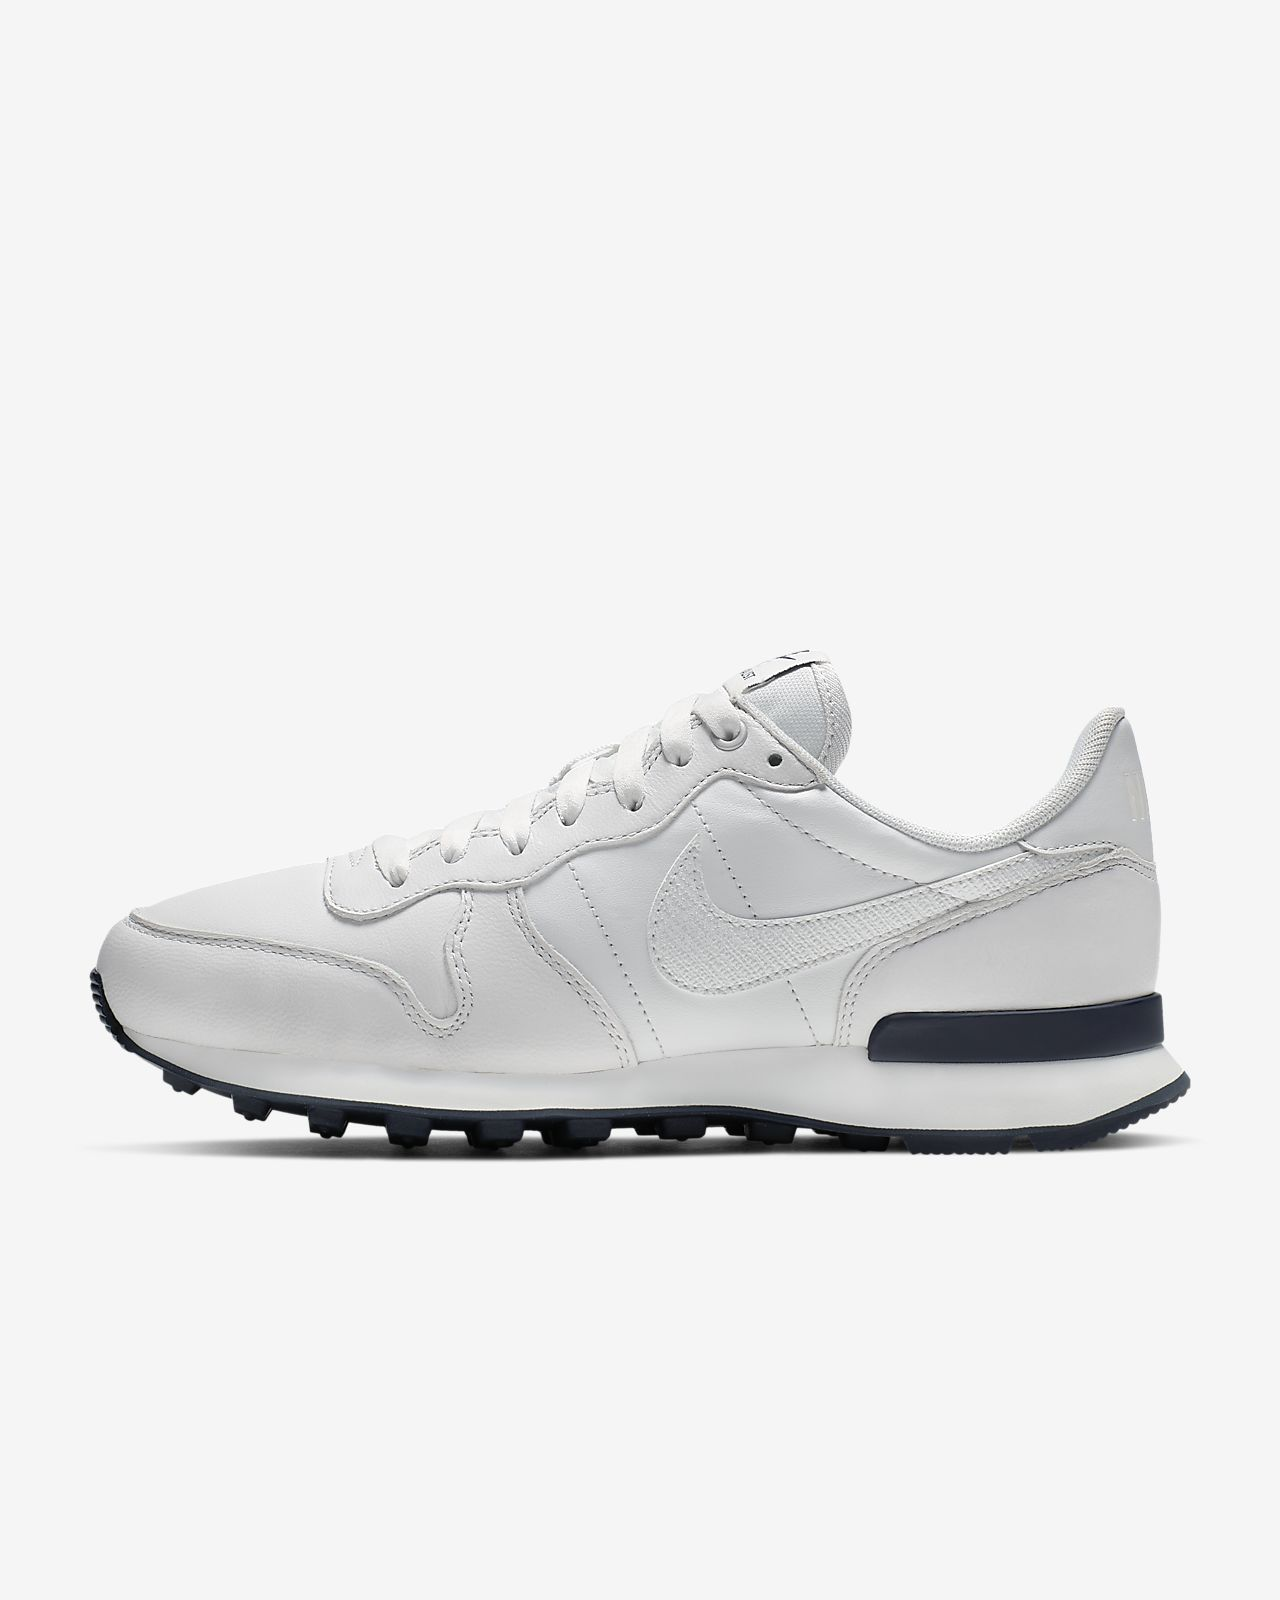 buy online 702aa a9761 Low Resolution Chaussure Nike Internationalist Premium pour Femme Chaussure  Nike Internationalist Premium pour Femme